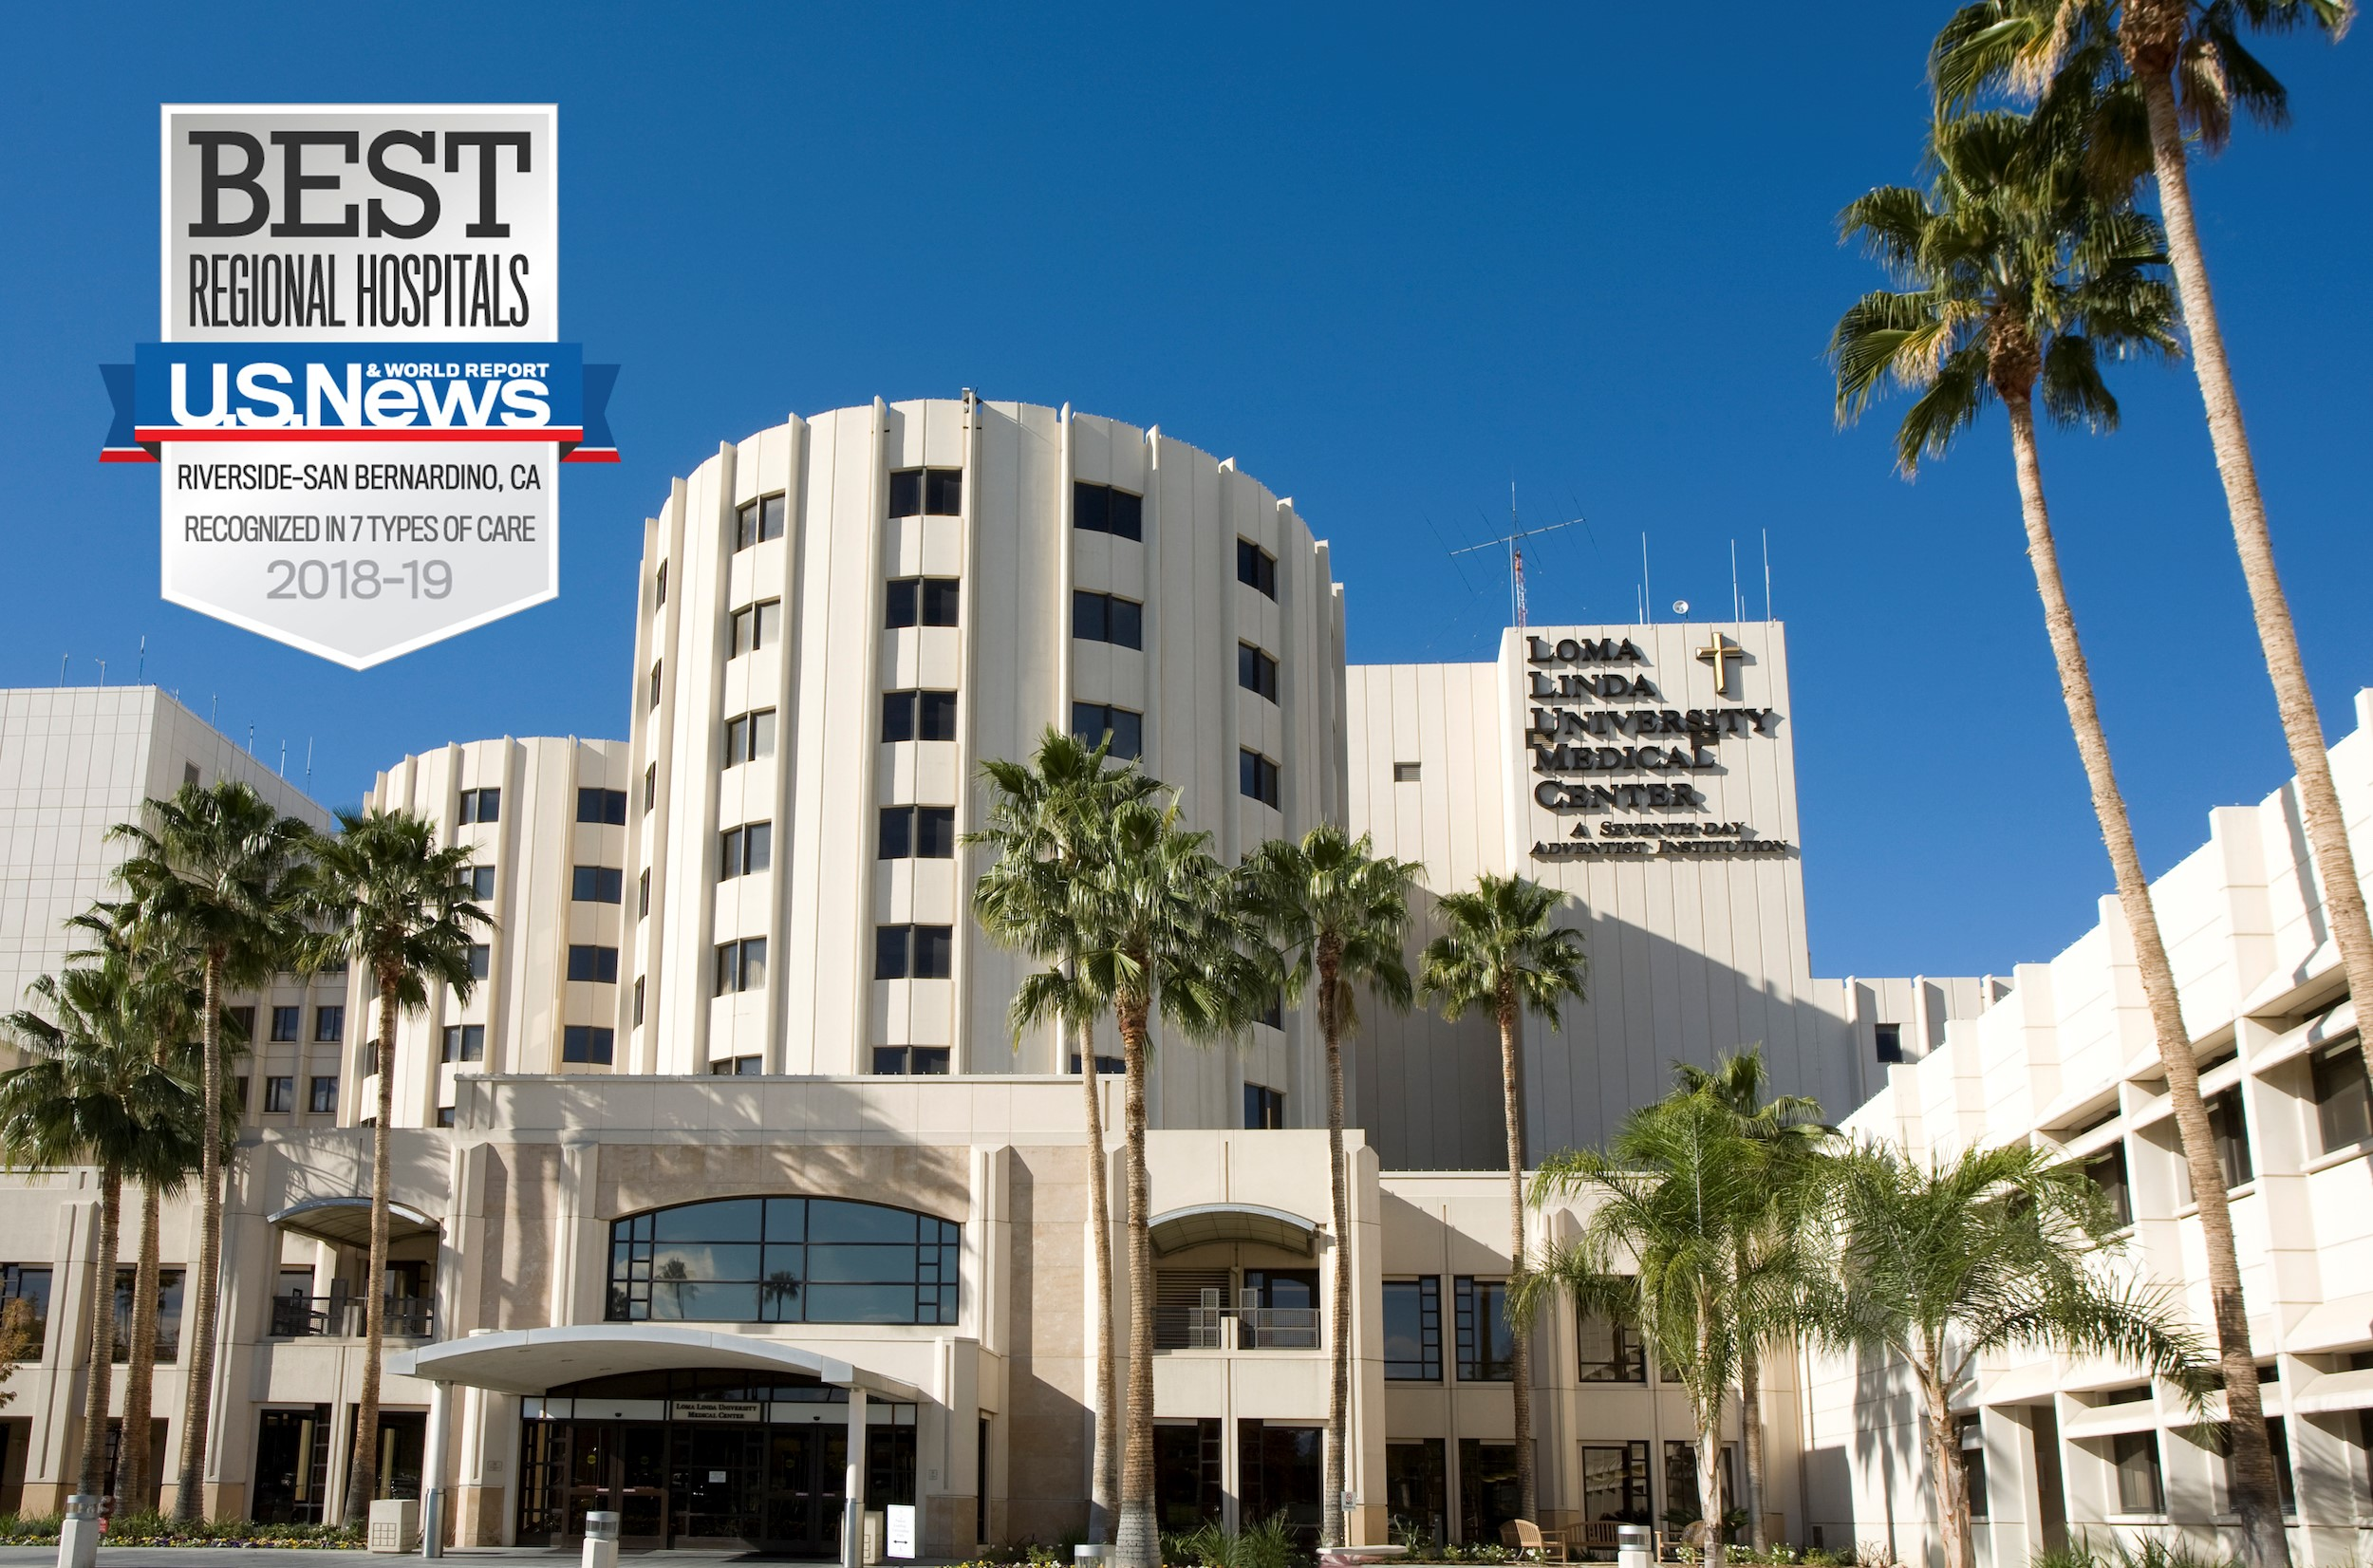 Loma Linda University Medical Center in Kalifornien/USA